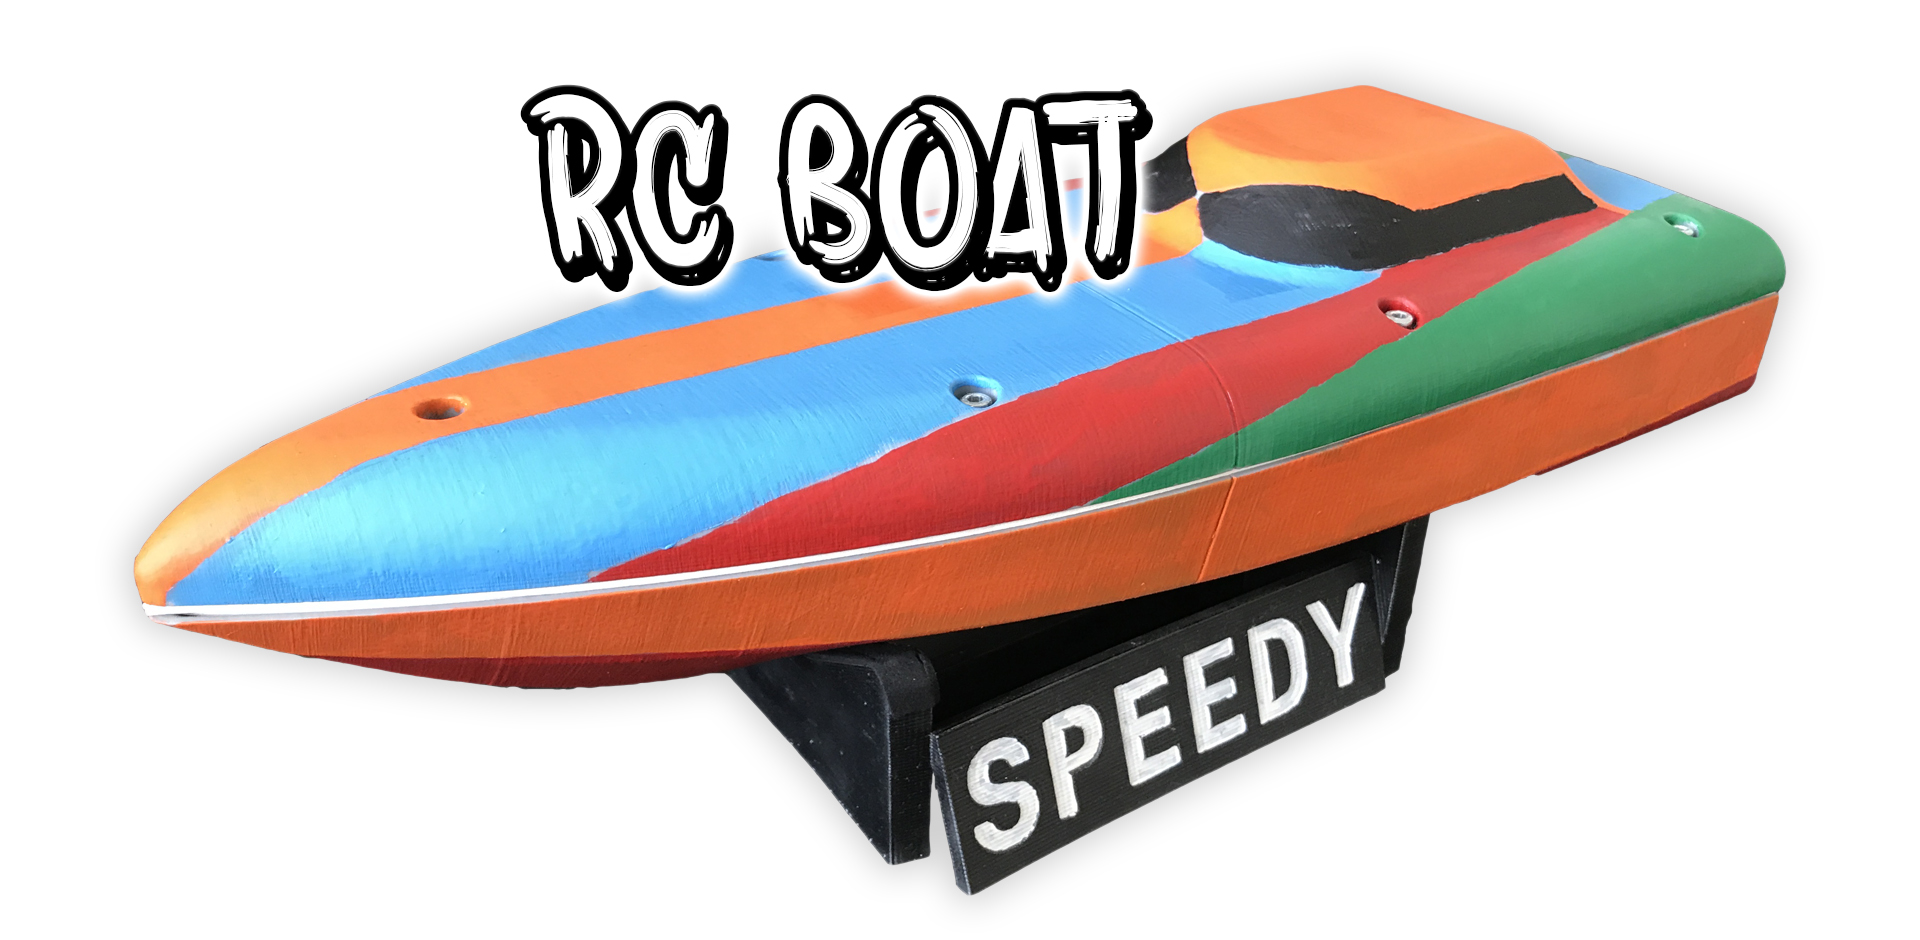 3D Printed RC Boat - SPEEDY_SLIDE